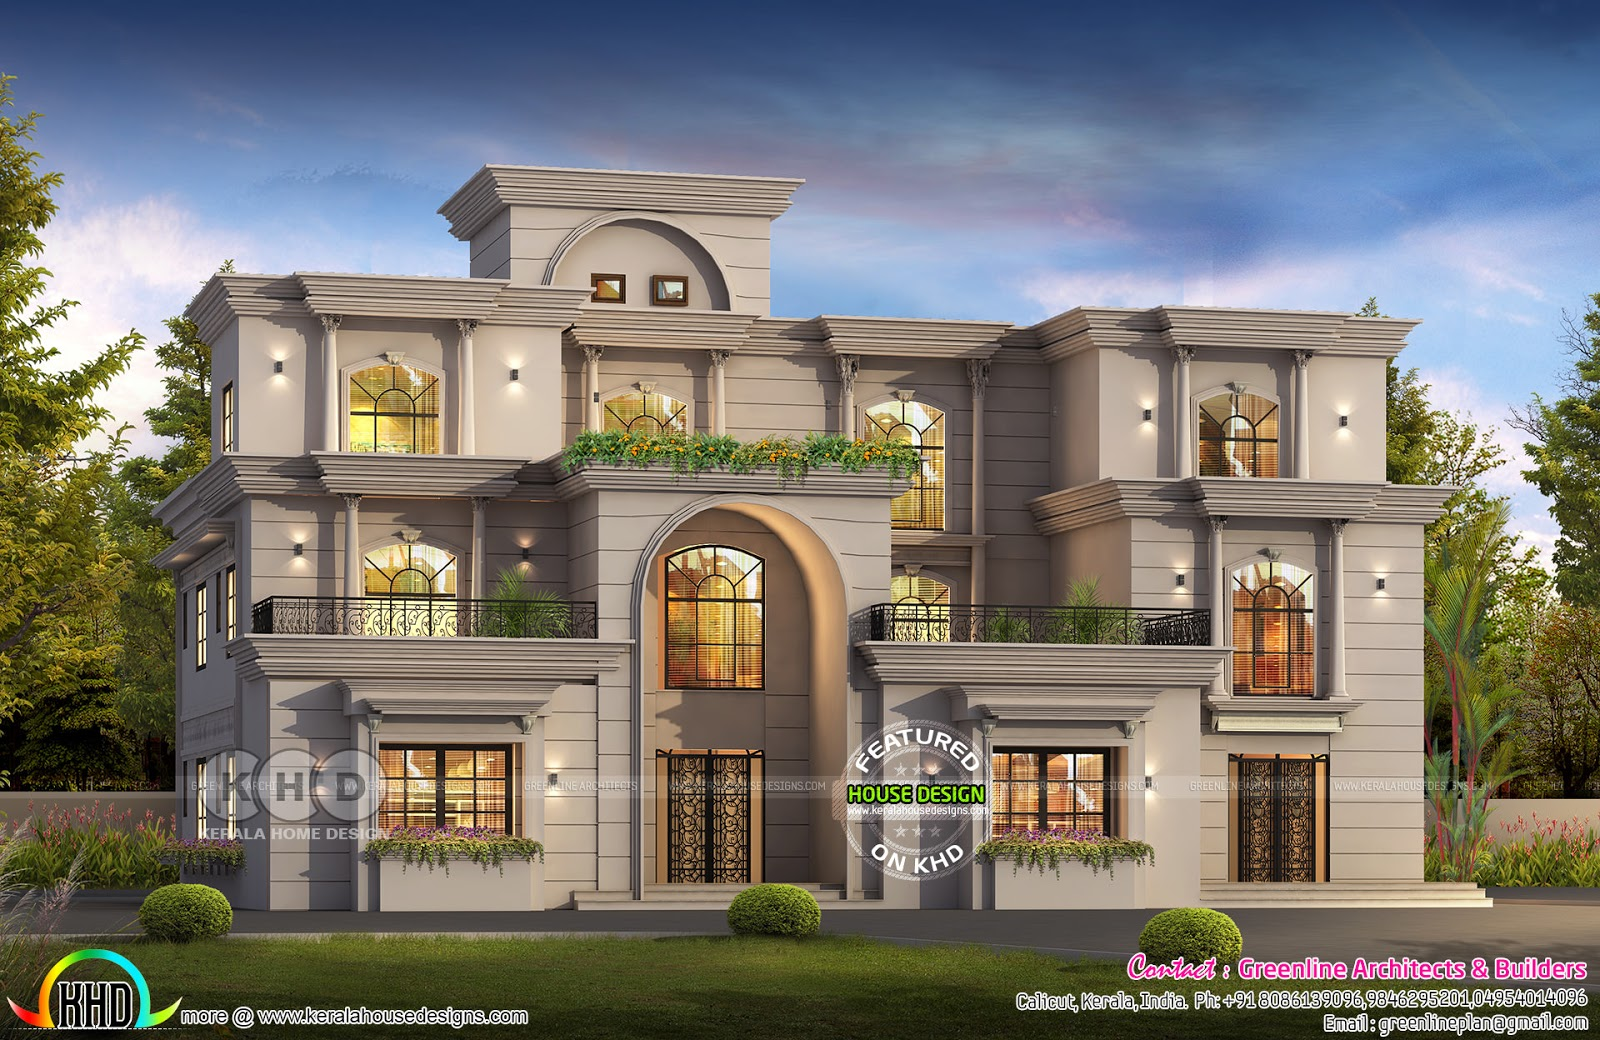 7 bedroom Colonial style luxury house plan | Kerala home ... on seven bedroom ranch floor plans, six bedroom floor plans, 3 bedroom house floor plans, southern house plans, 6 bedroom open floor plans, 9 bedroom house plans, 8 bedroom house floor plans, castle mansion house plans, 10 bedroom house floor plans, 18 bedroom house floor plans, 2 bedroom 2 bath house plans, 7 bedroom house with pool, 5 bedroom house floor plans, 6 bedroom 1 level floor plans, 6 bedroom modular home plans, 15 bedroom house floor plans, outdoor furniture floor plans, 7 bedroom floor plans open, 20 bedroom house floor plans,